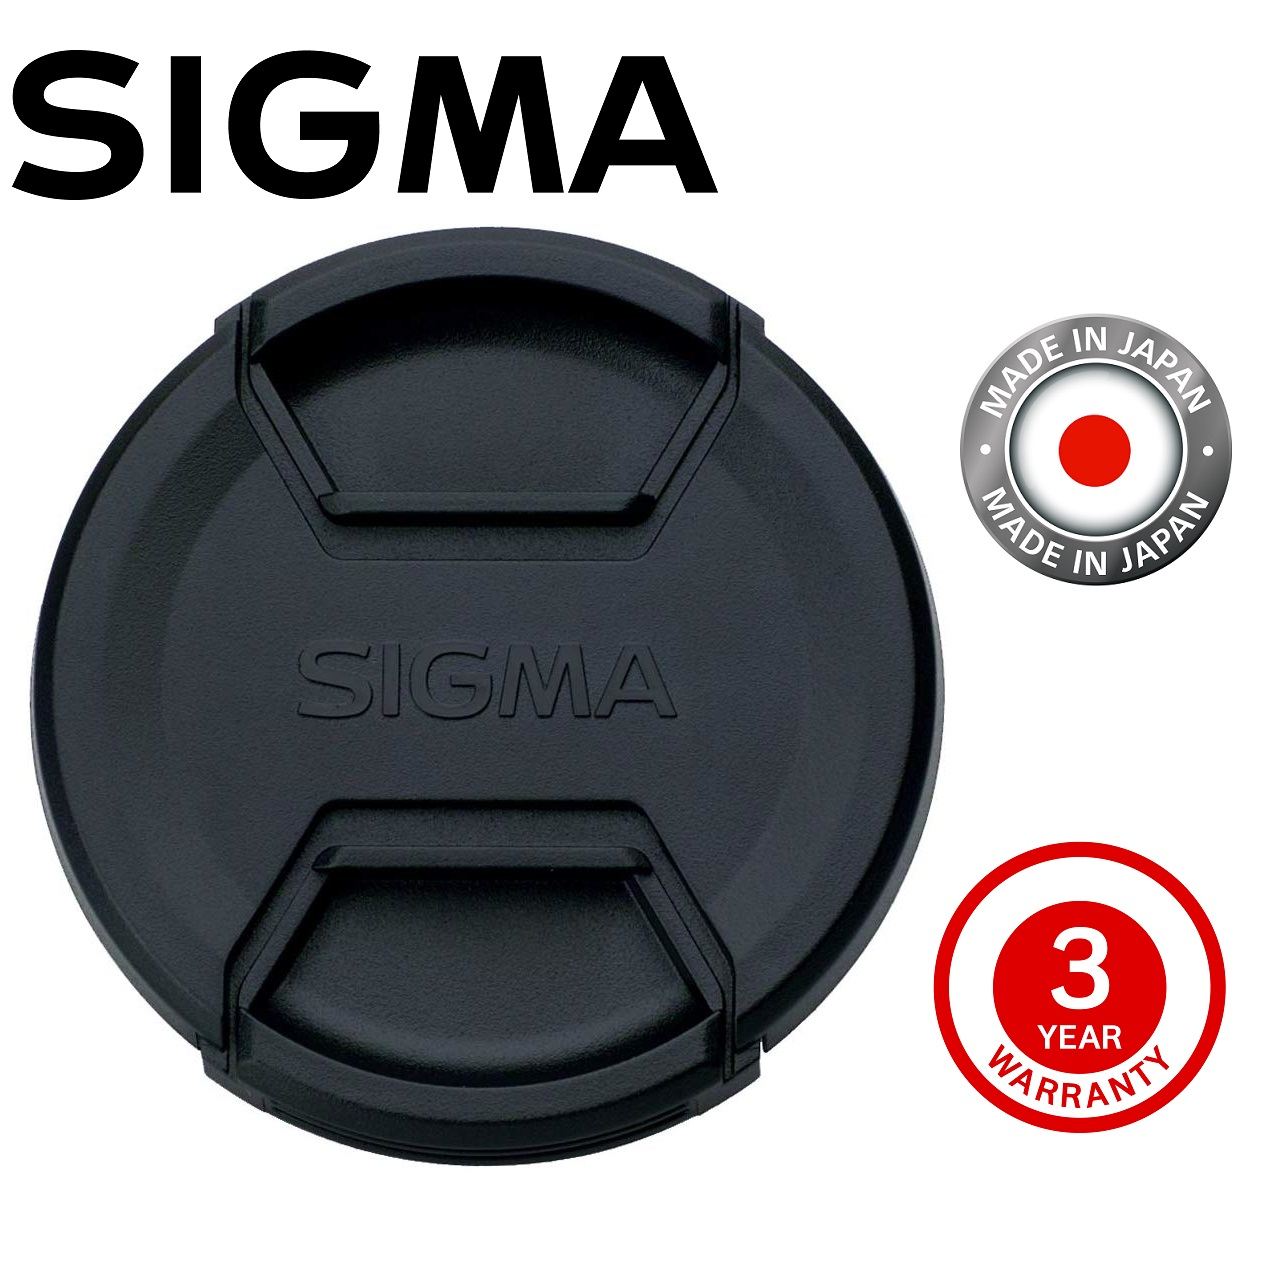 Sigma Front Lens cover 55mm